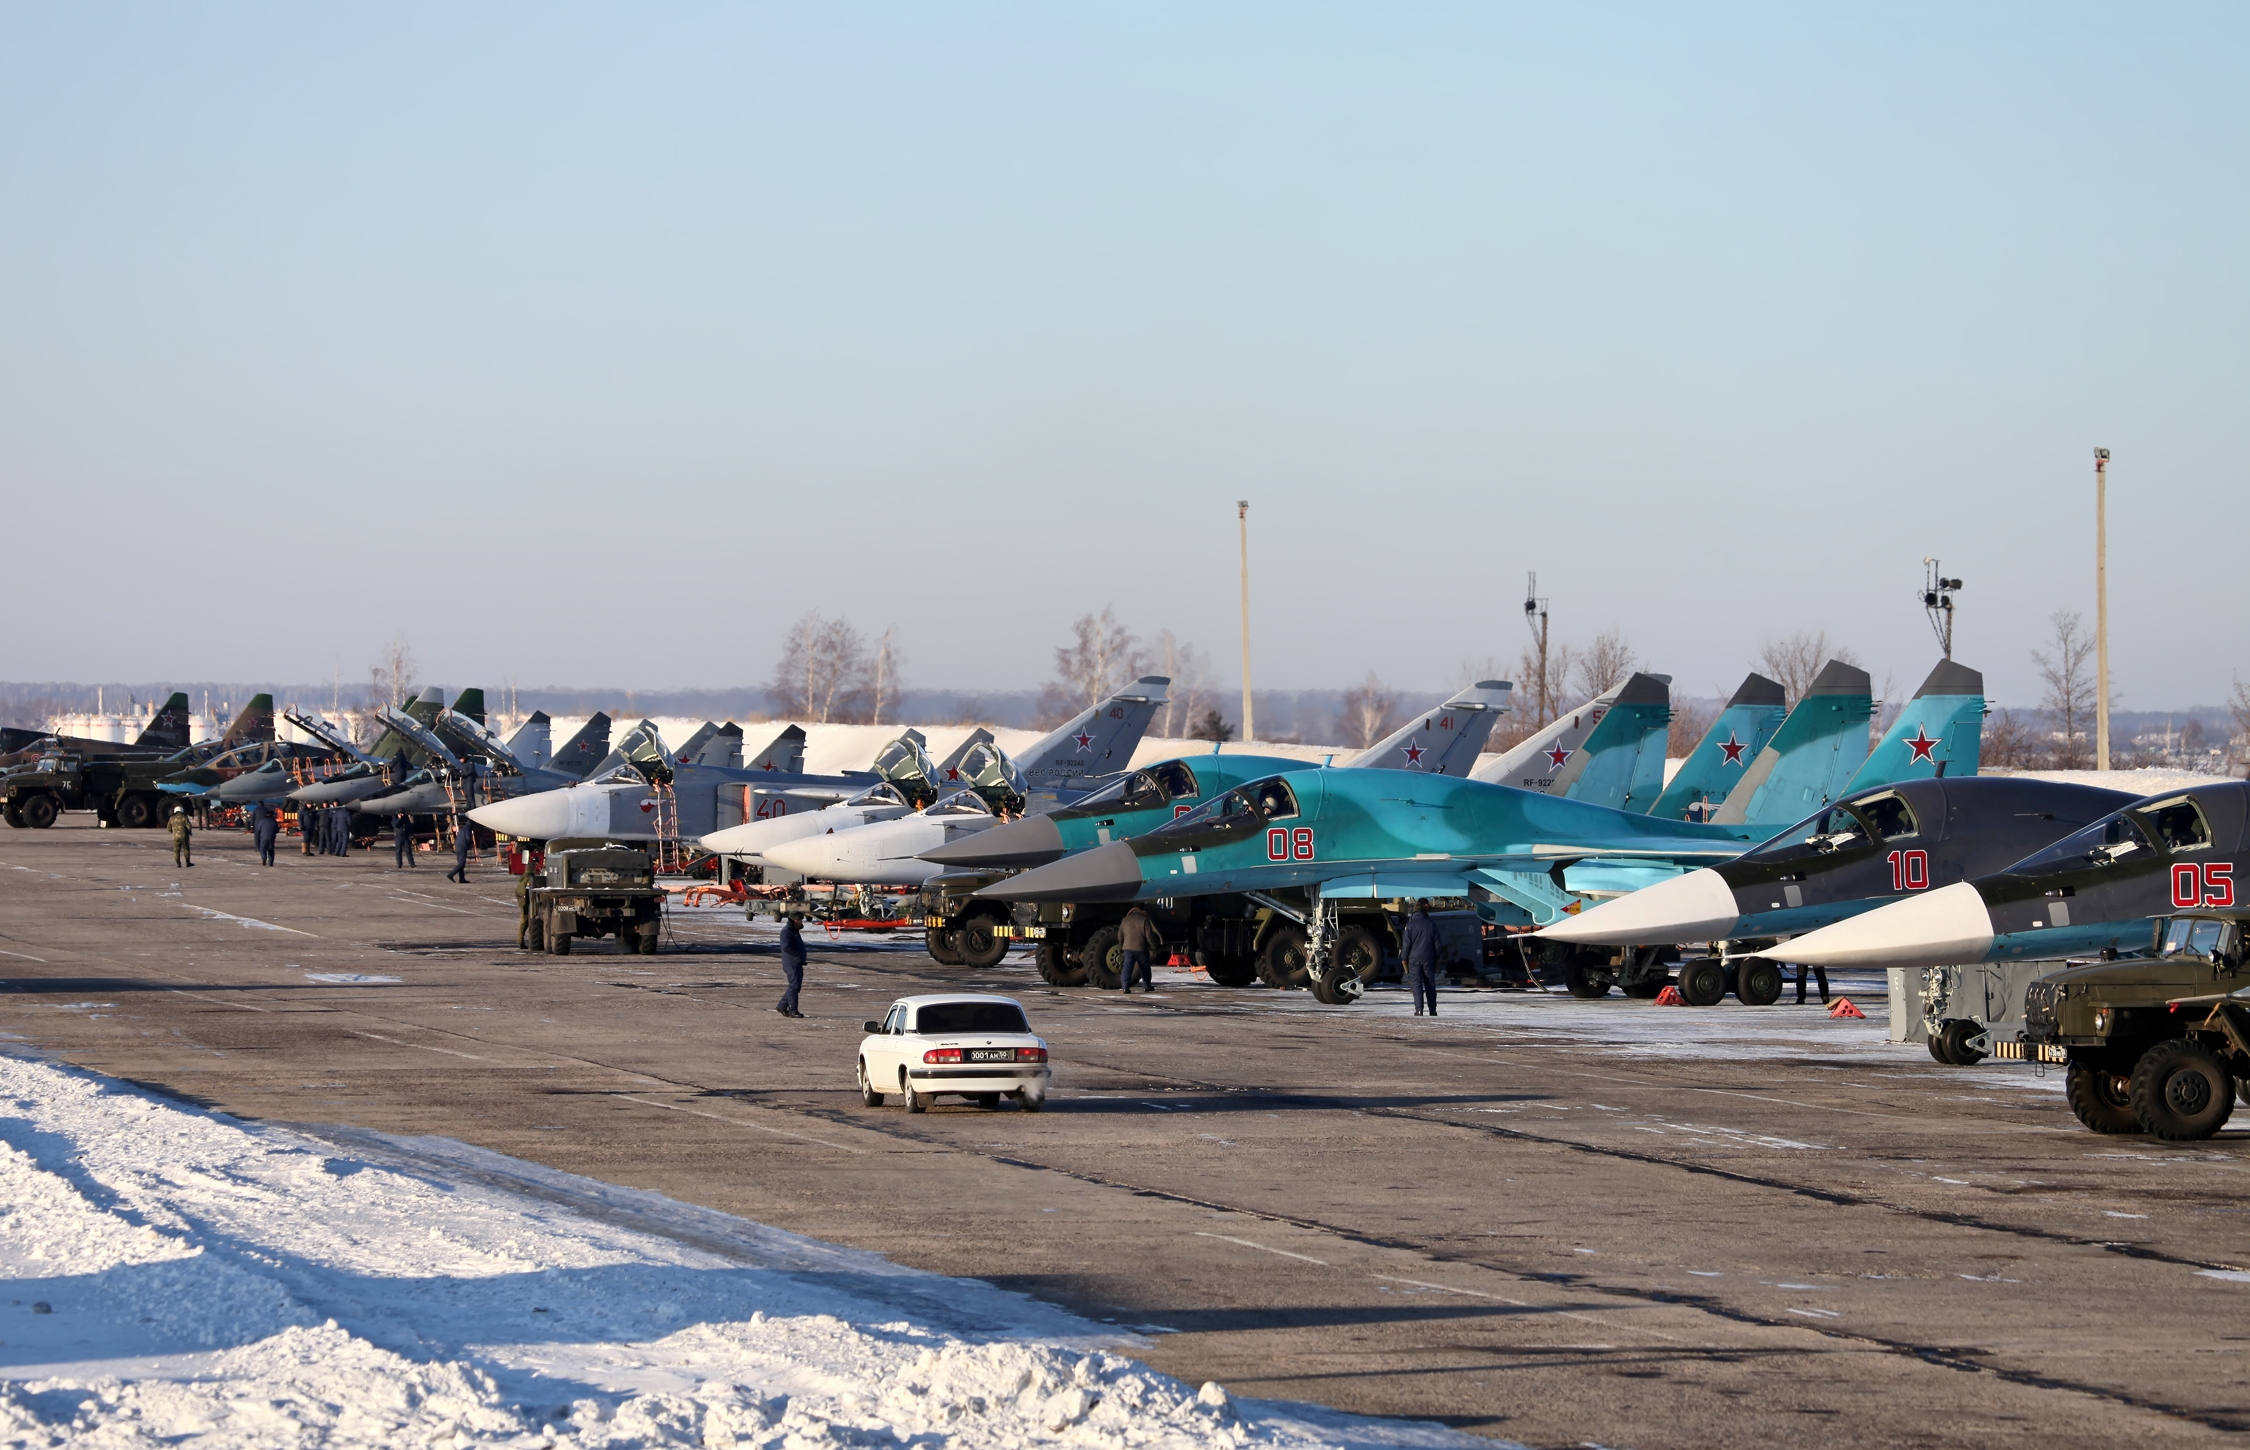 su 34 in syria with File Military Aircraft  Lipetsk Air Base on 50824597 as well 201511251019803901 Syrie Guerre Avion Russe also Mi28 Night Hunter Attack Helicopter Helmet also Russian Su 34  bat Aircraft furthermore Planes2.